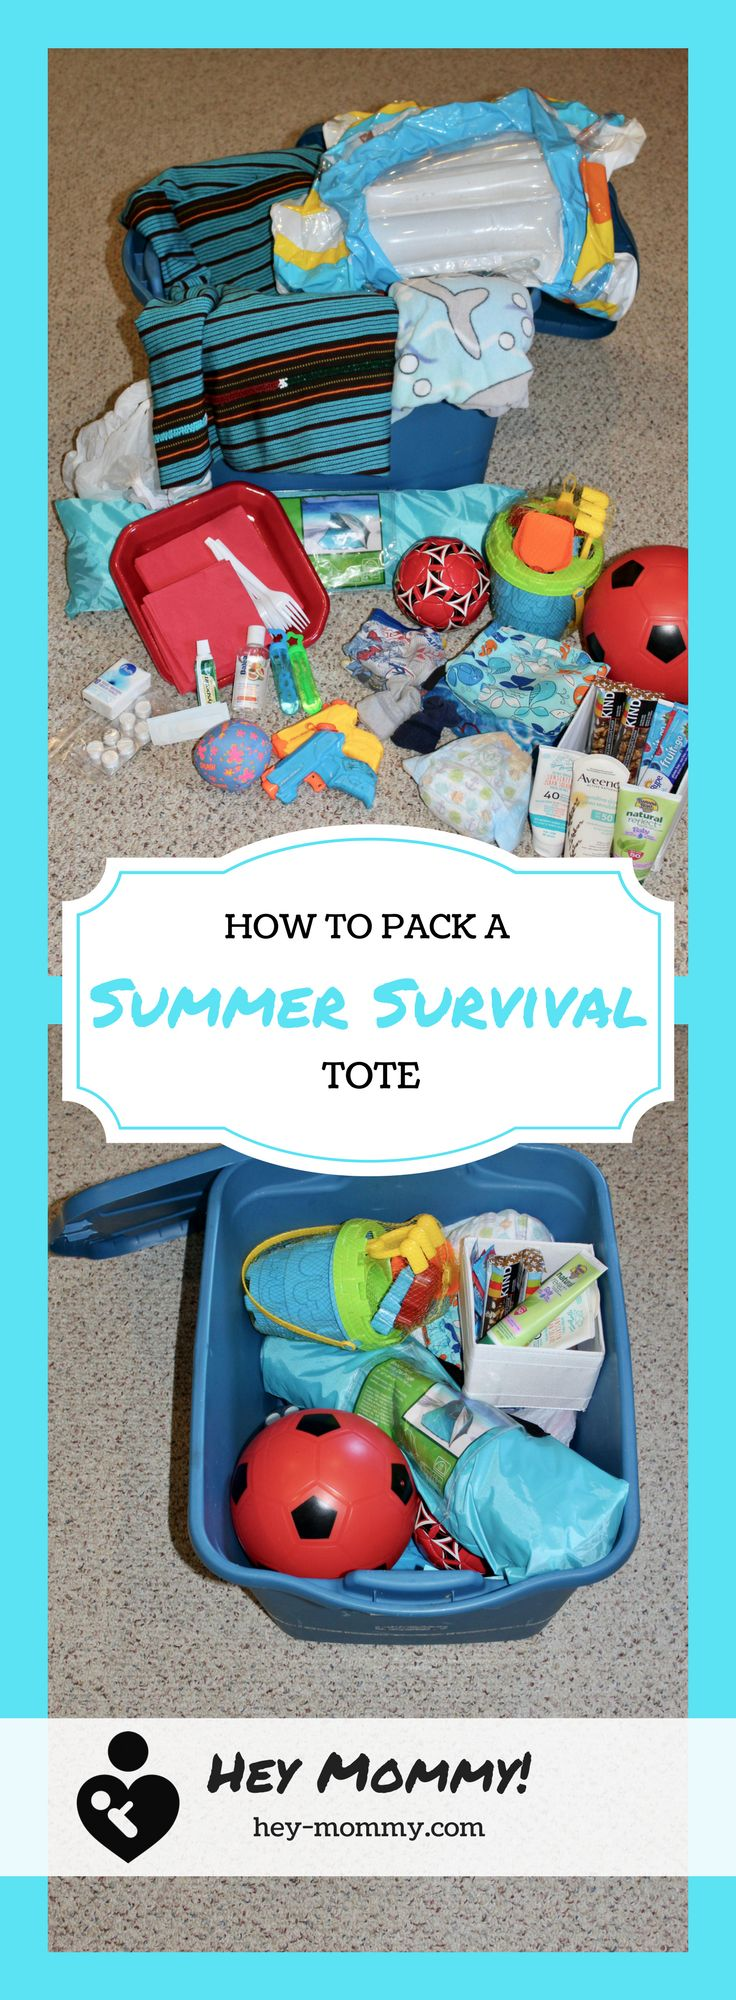 How to pack a Summer Survival Tote and some ideas for essentials to include.